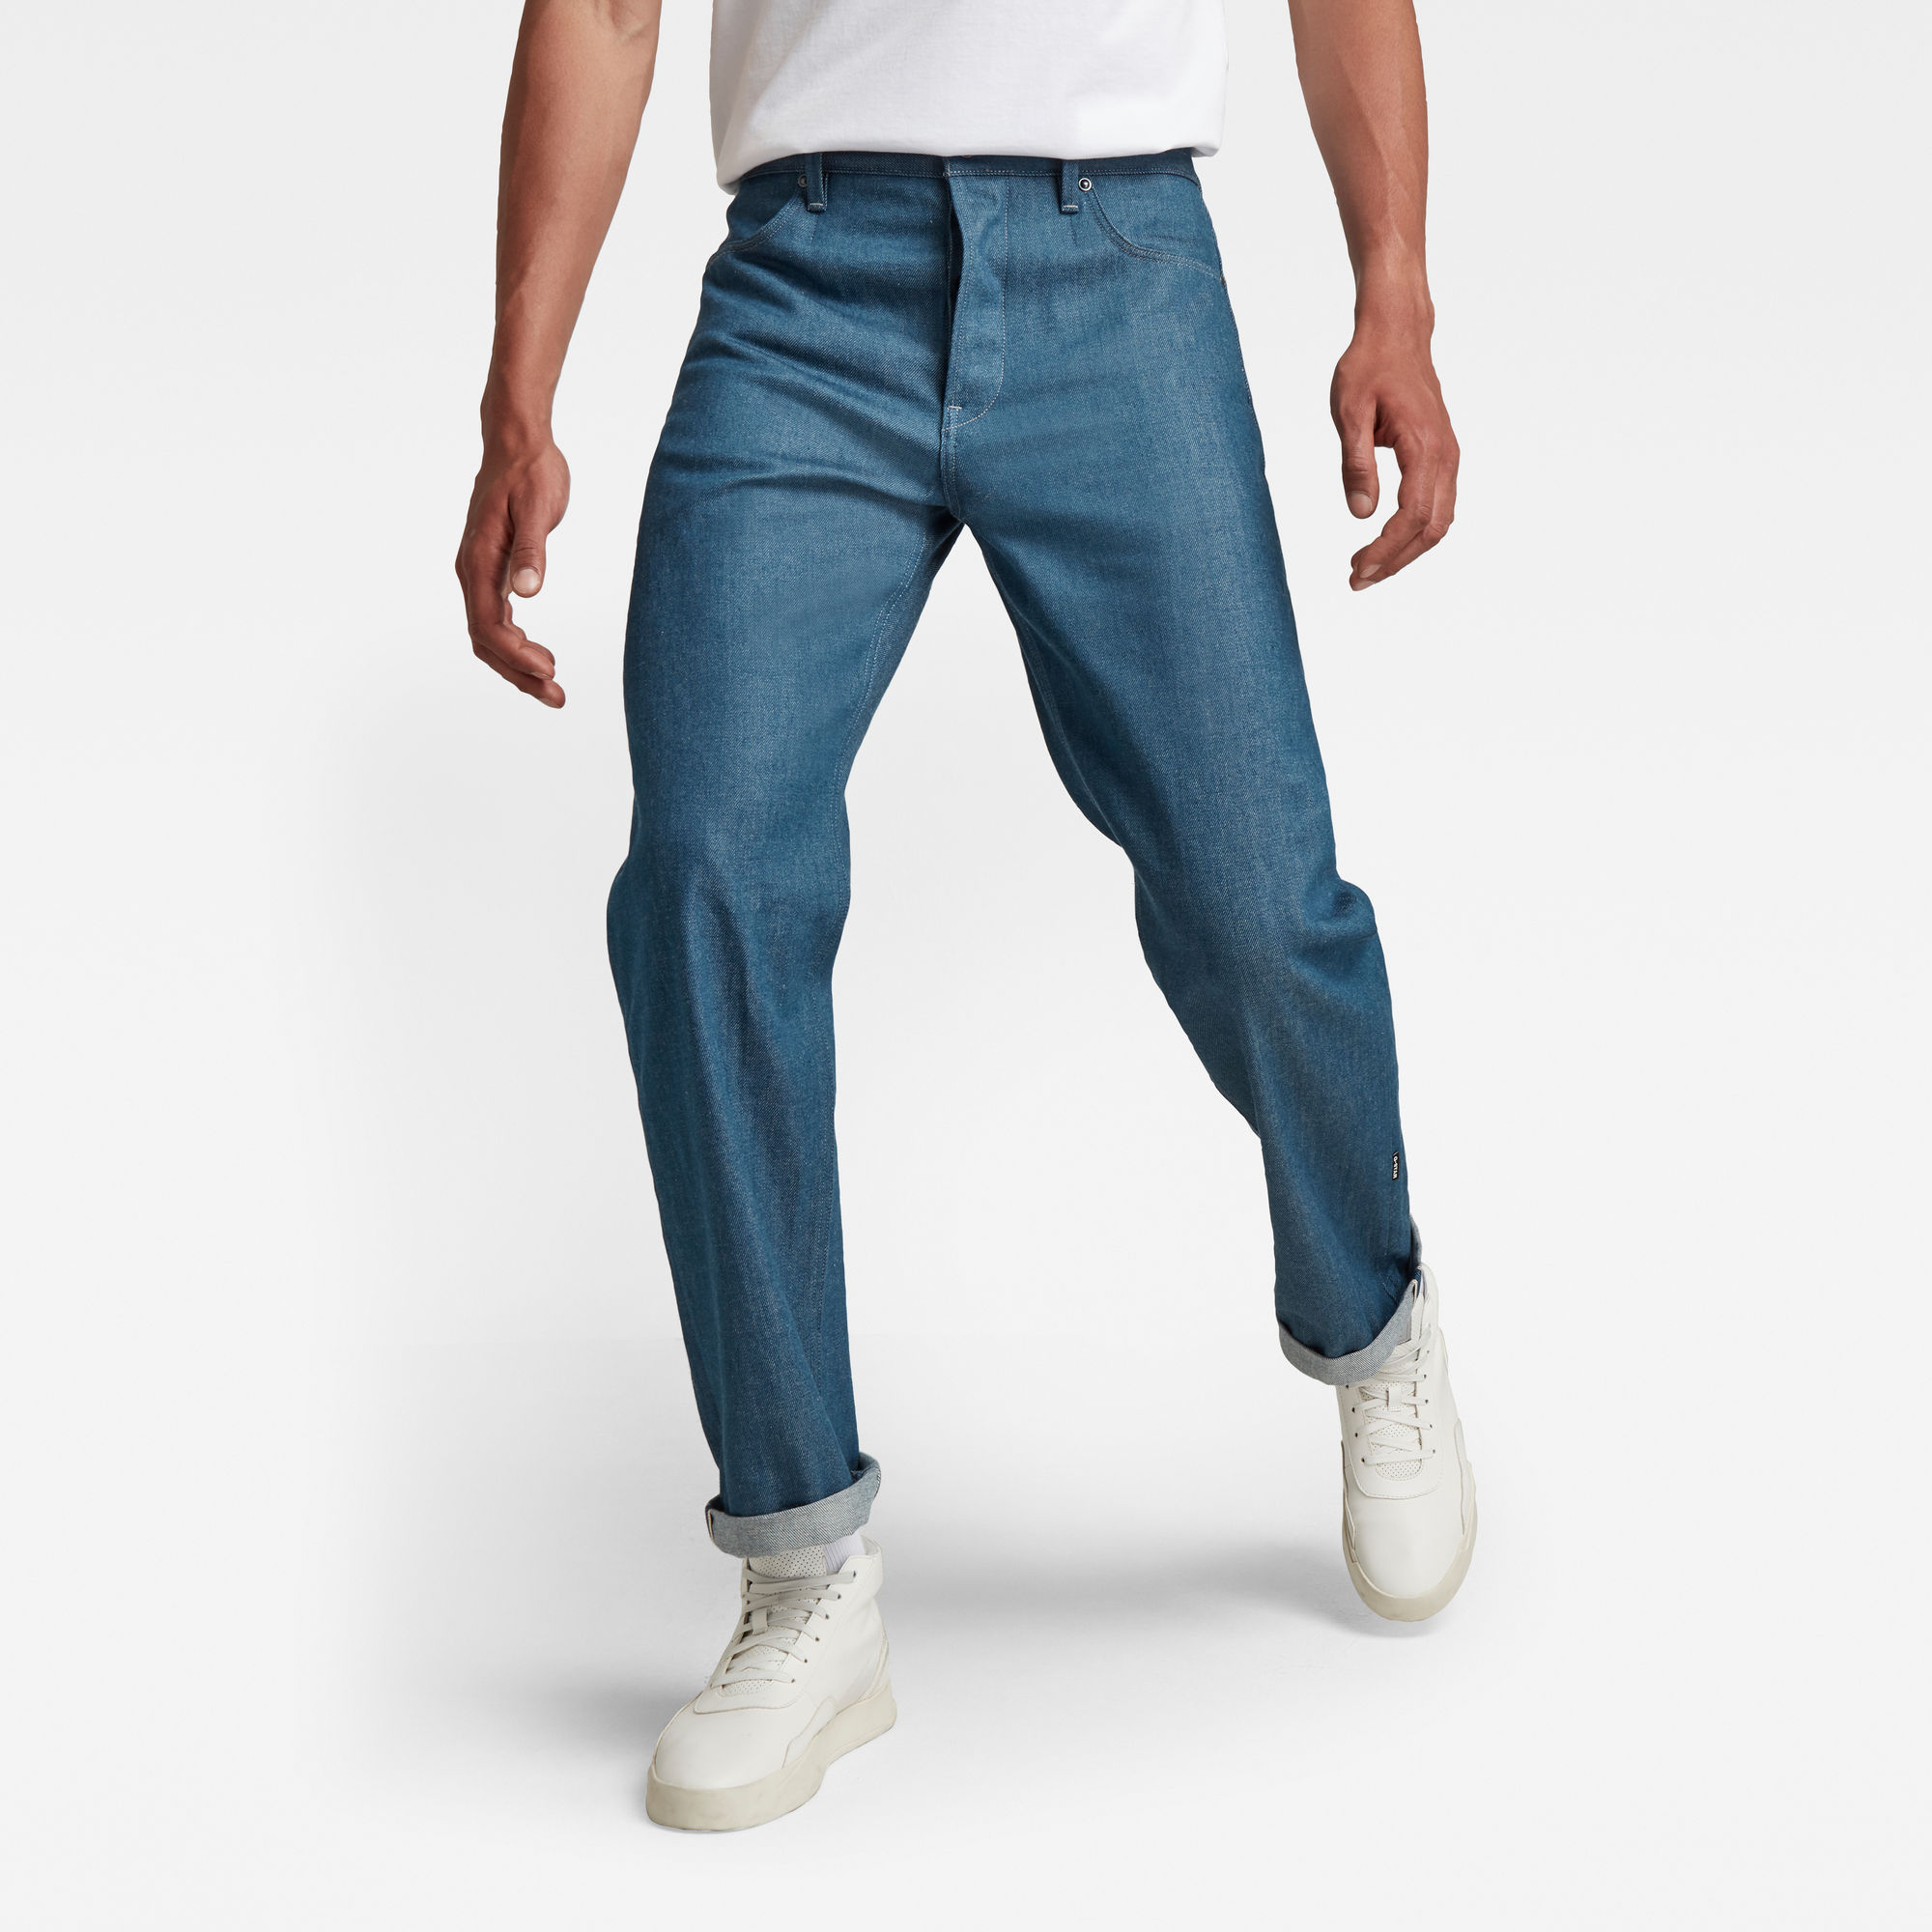 G-Star RAW Heren GSRR Type 49 Relaxed Straight Jeans Donkerblauw